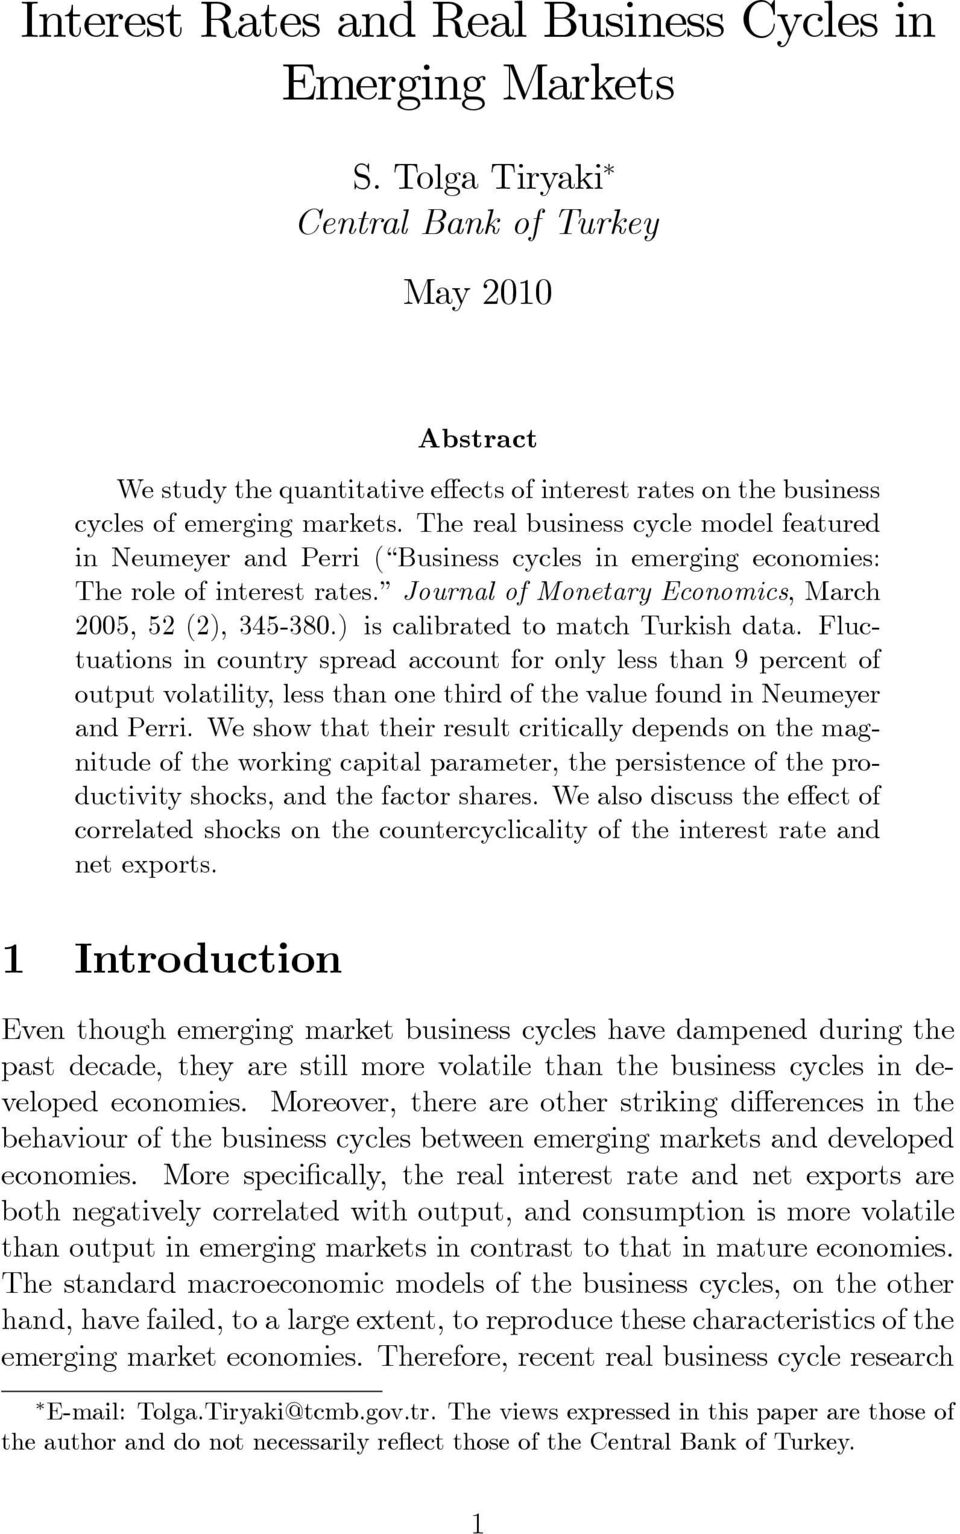 The real business cycle model featured in Neumeyer and Perri ( Business cycles in emerging economies: The role of interest rates. Journal of Monetary Economics, March 2005, 52 (2), 345-380.